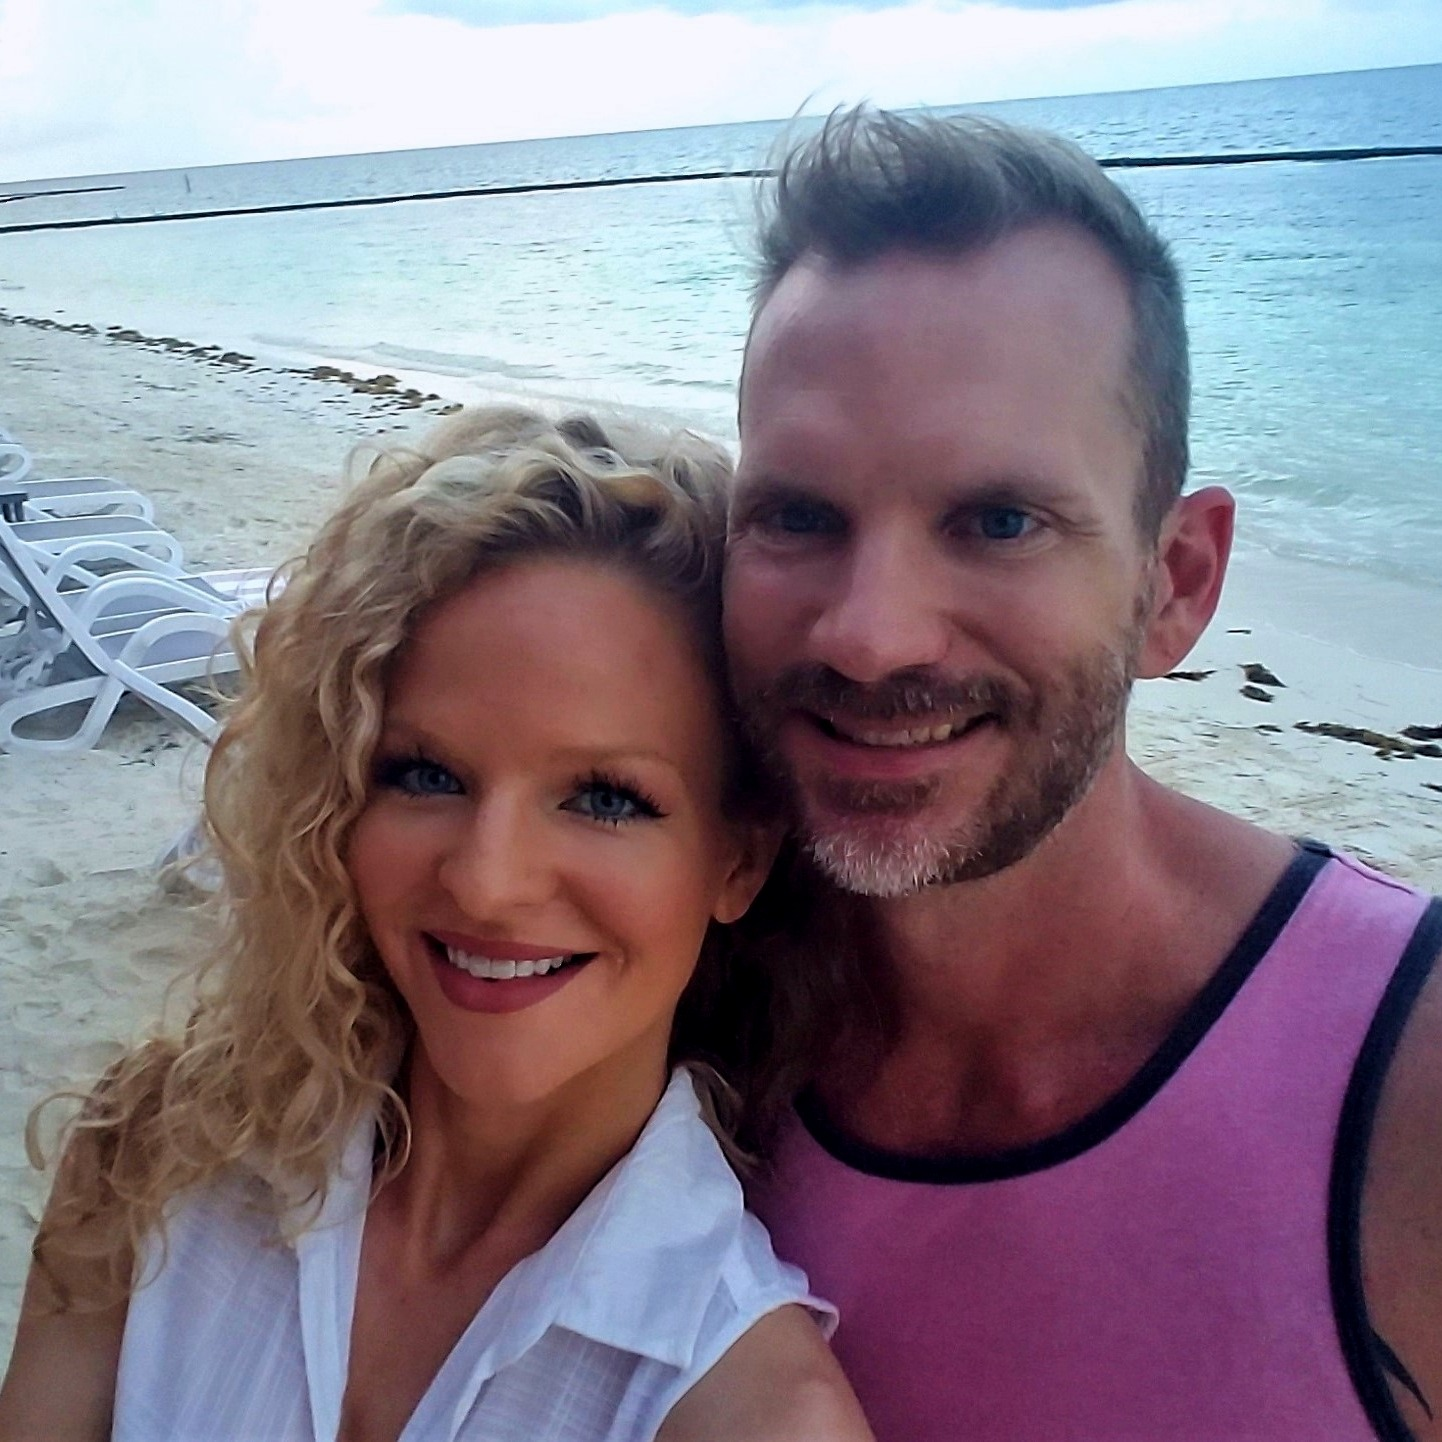 Desire Resorts - Open Relationships and Ethical Non-Monogamy